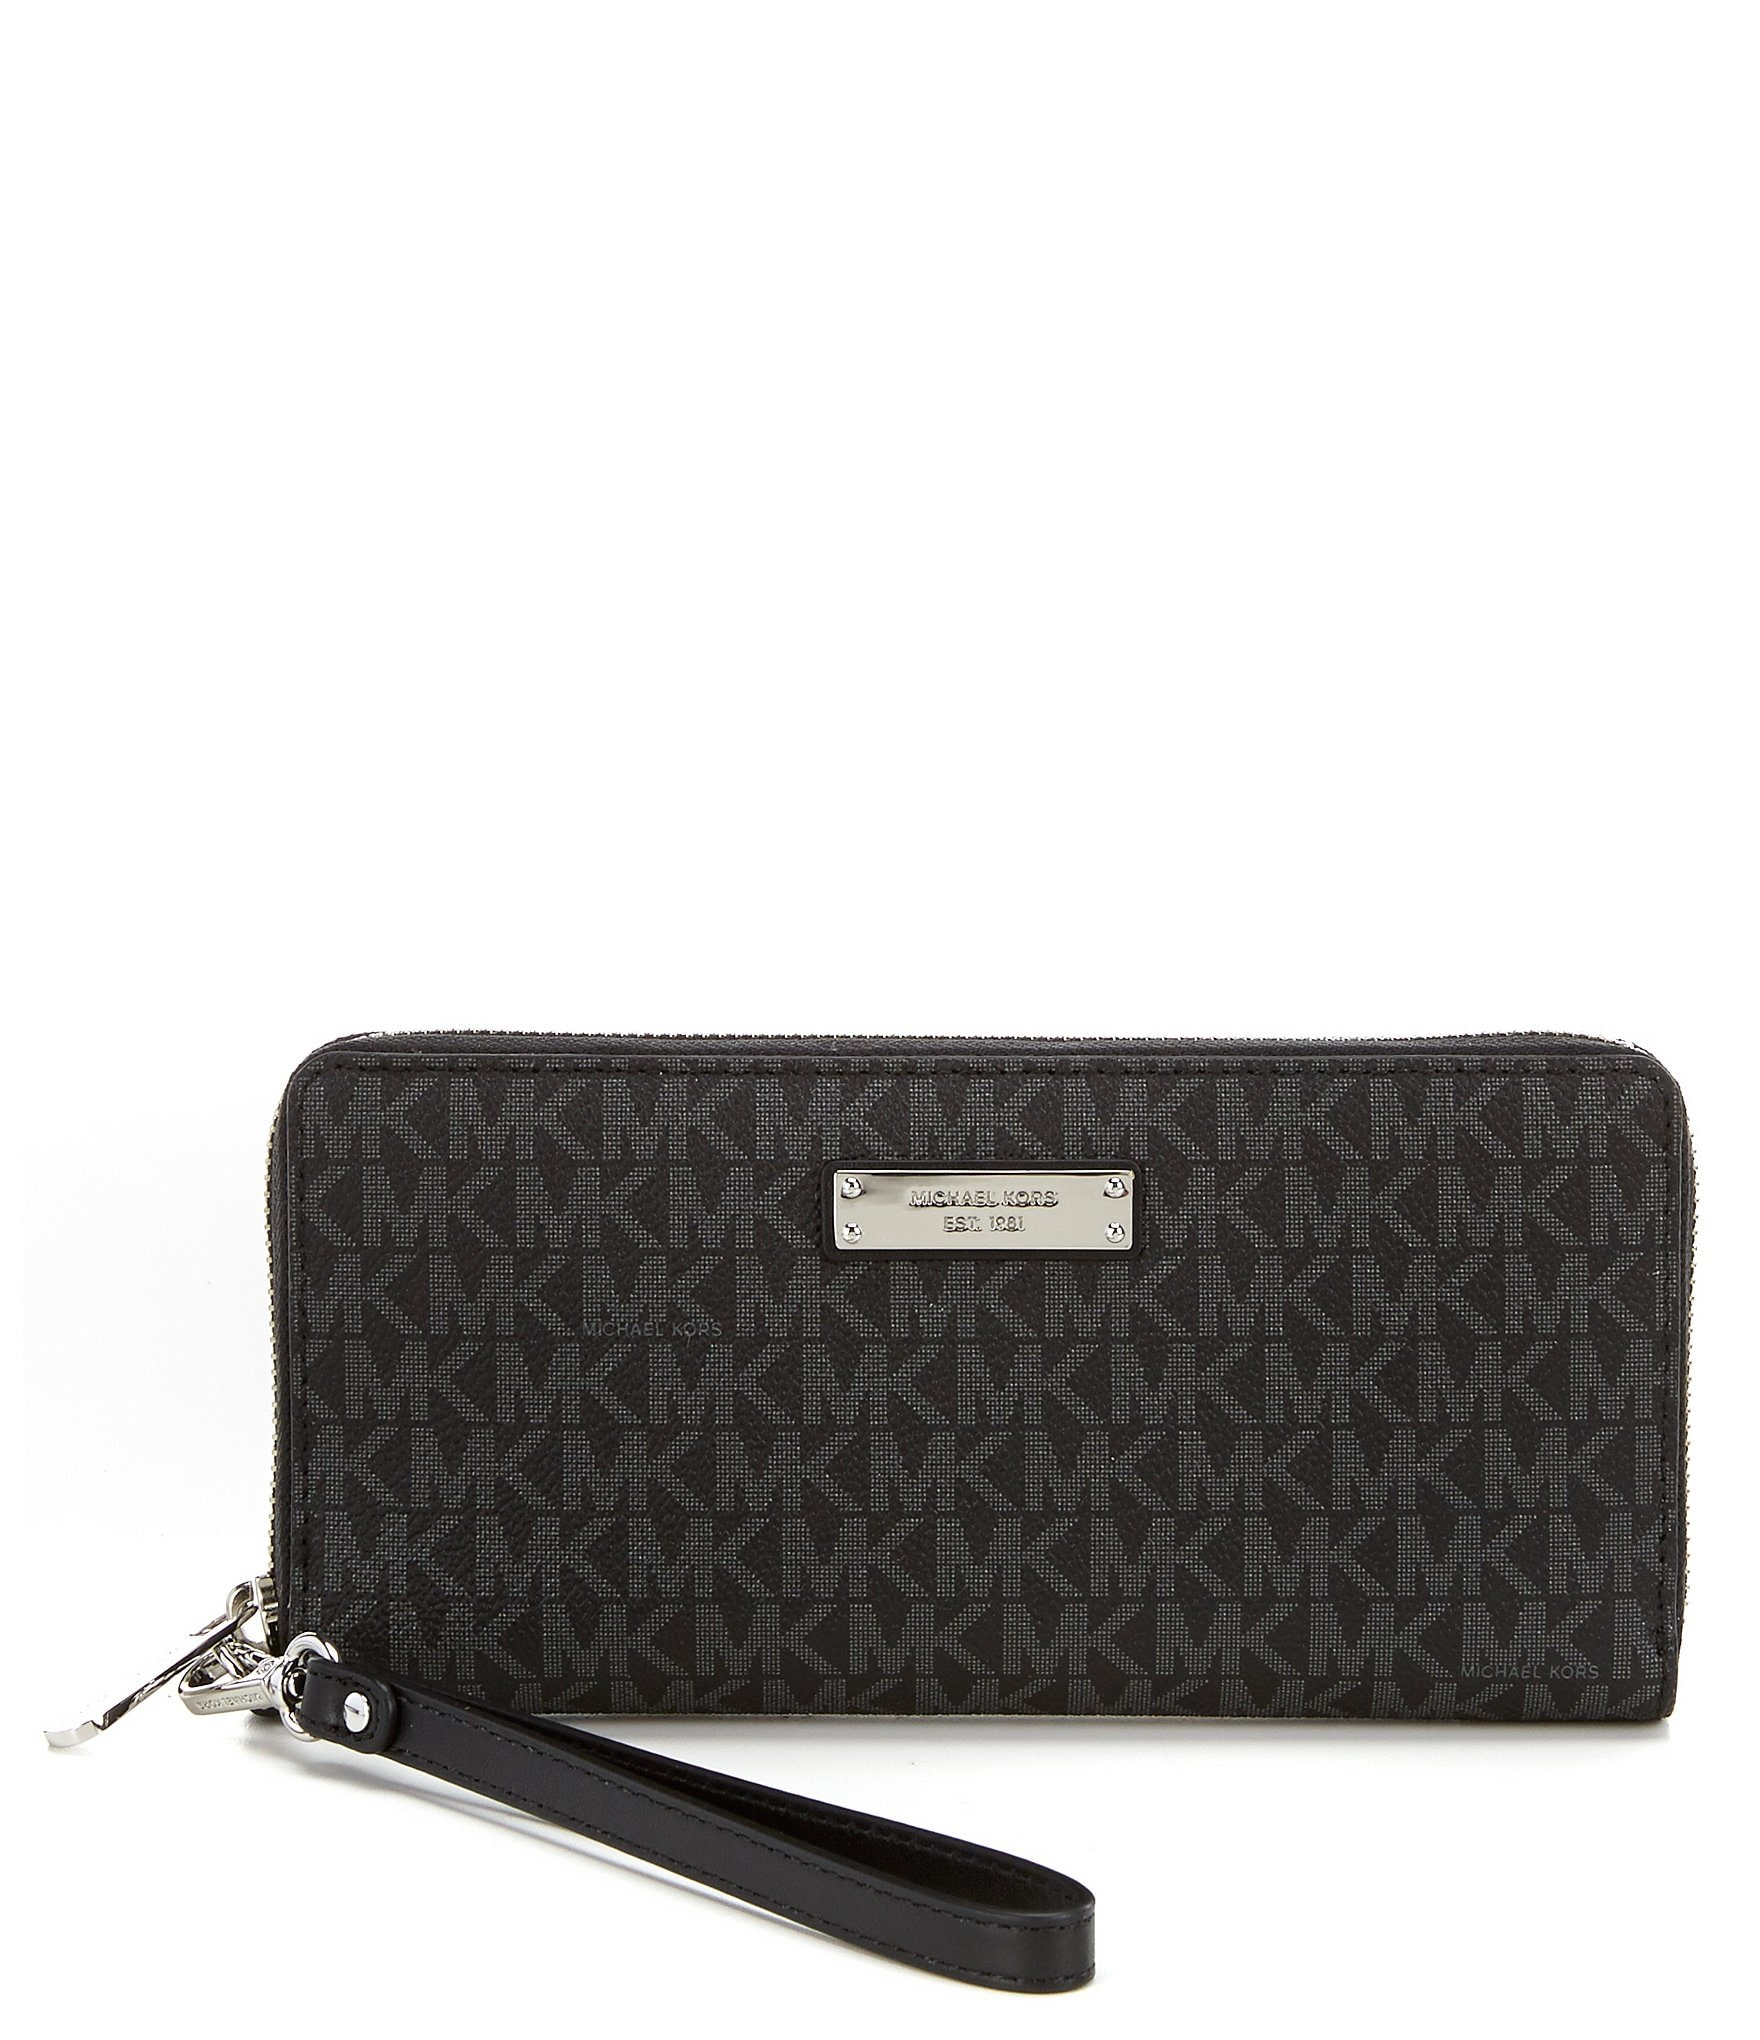 9c8708ca4327 MICHAEL Michael Kors Women s Wallets